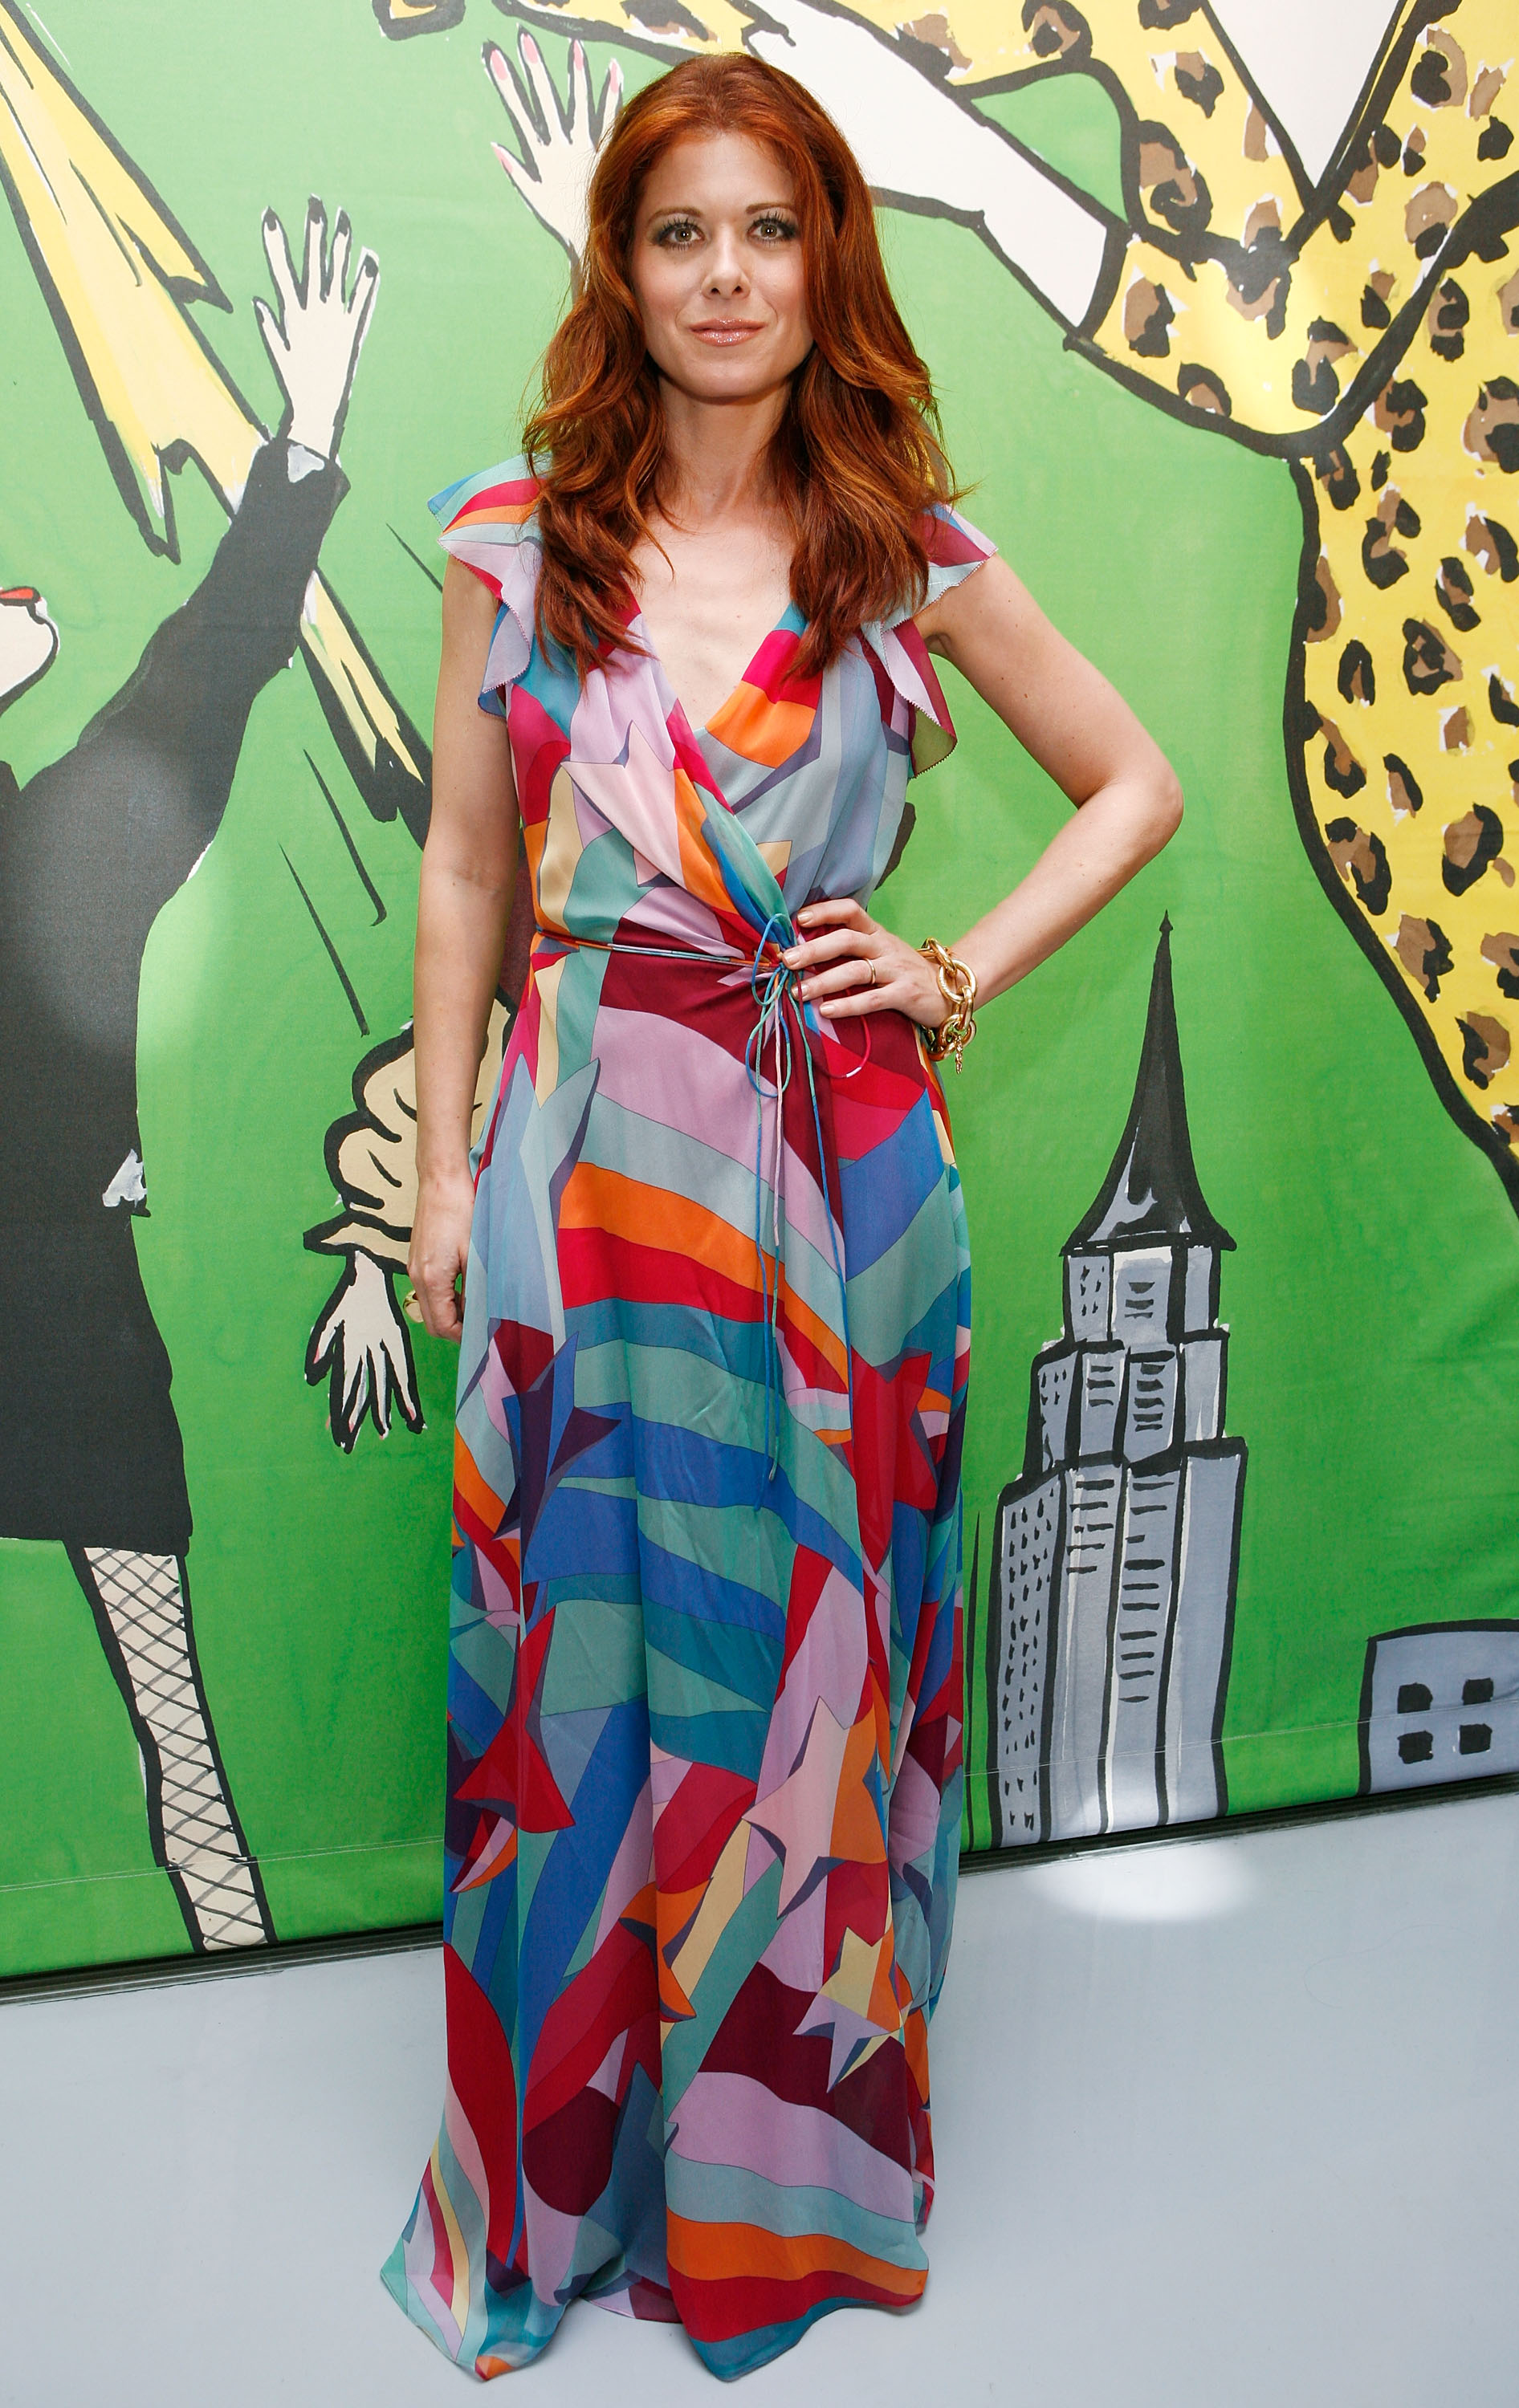 98074_Celebutopia-Debra_Messing-Launch_of_Diane_Von_Furstenberg56s_Wonder_Woman_collection-03_122_899lo.jpg